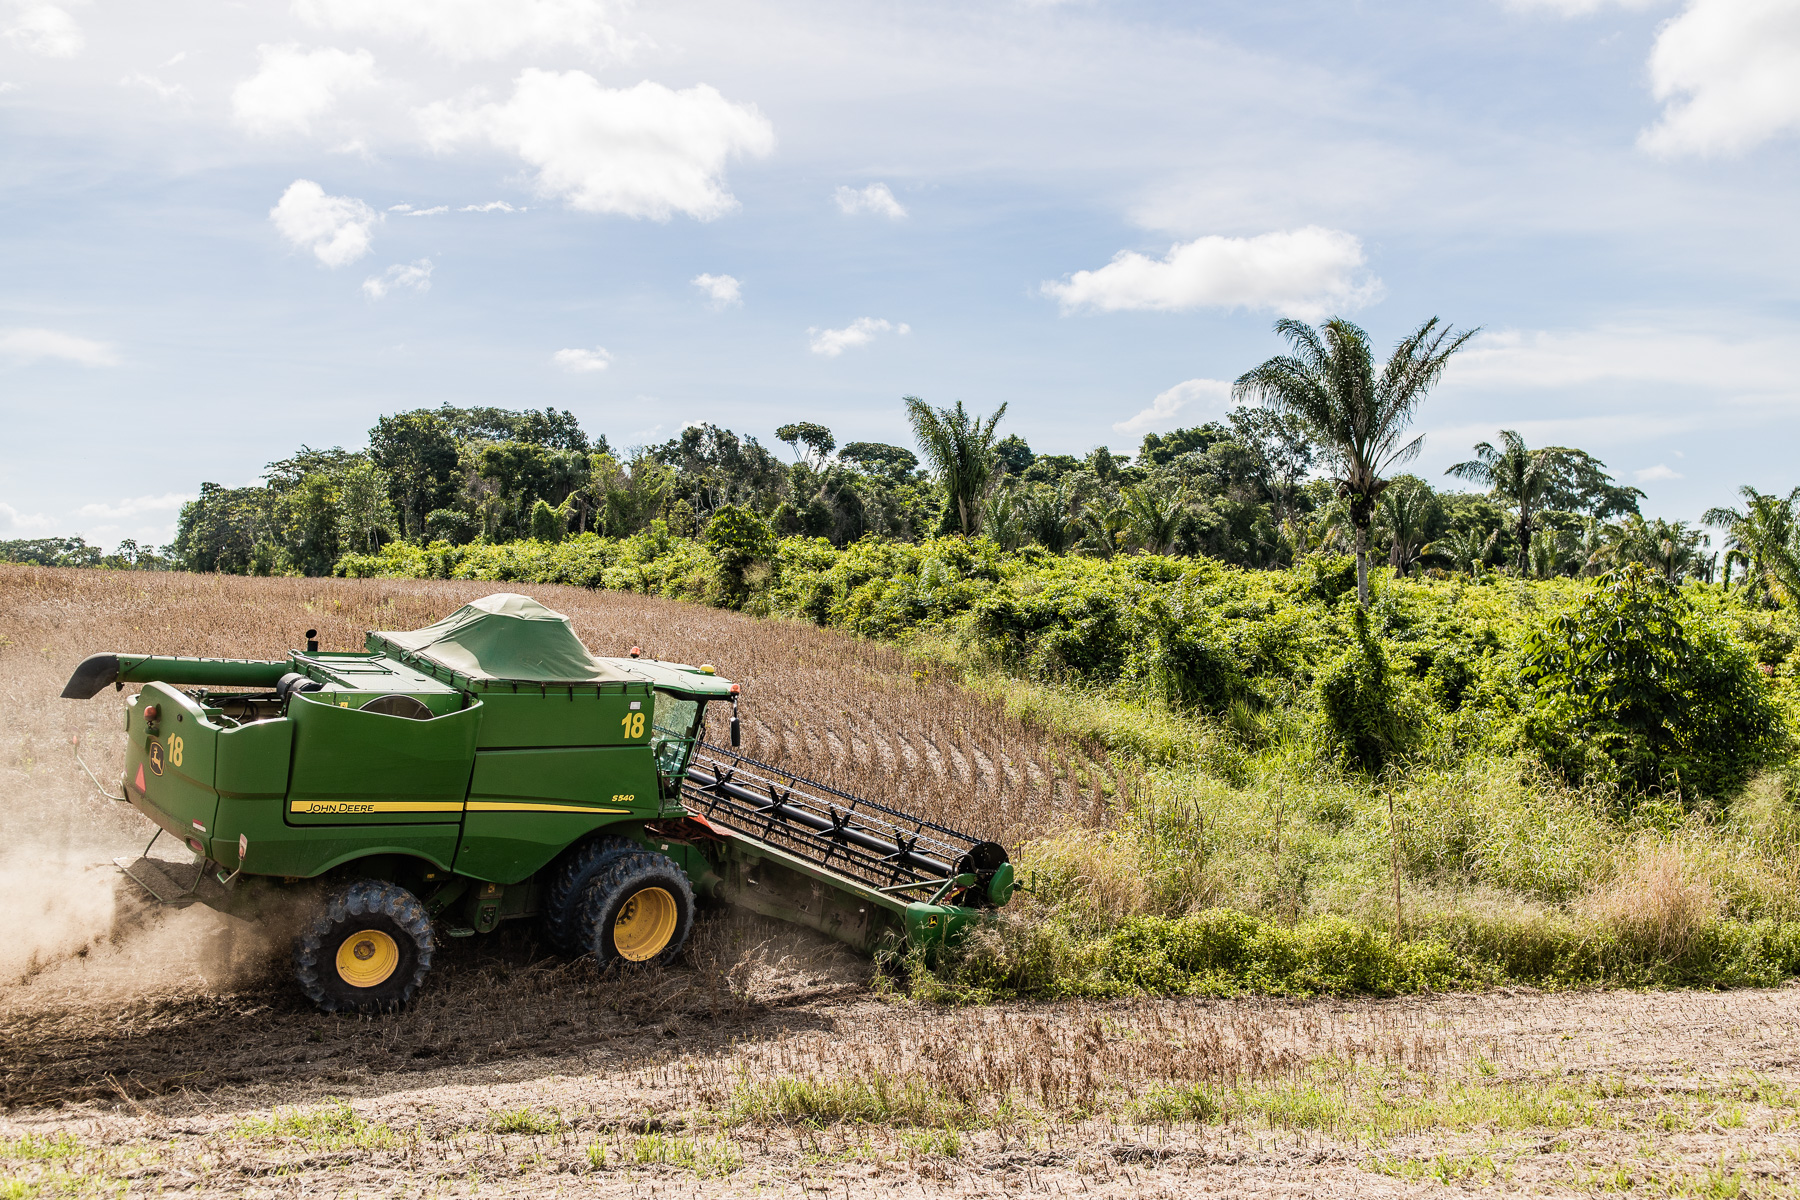 0927_0854_41_SANTAREM_FARM_ONE_HARVEST_0631_